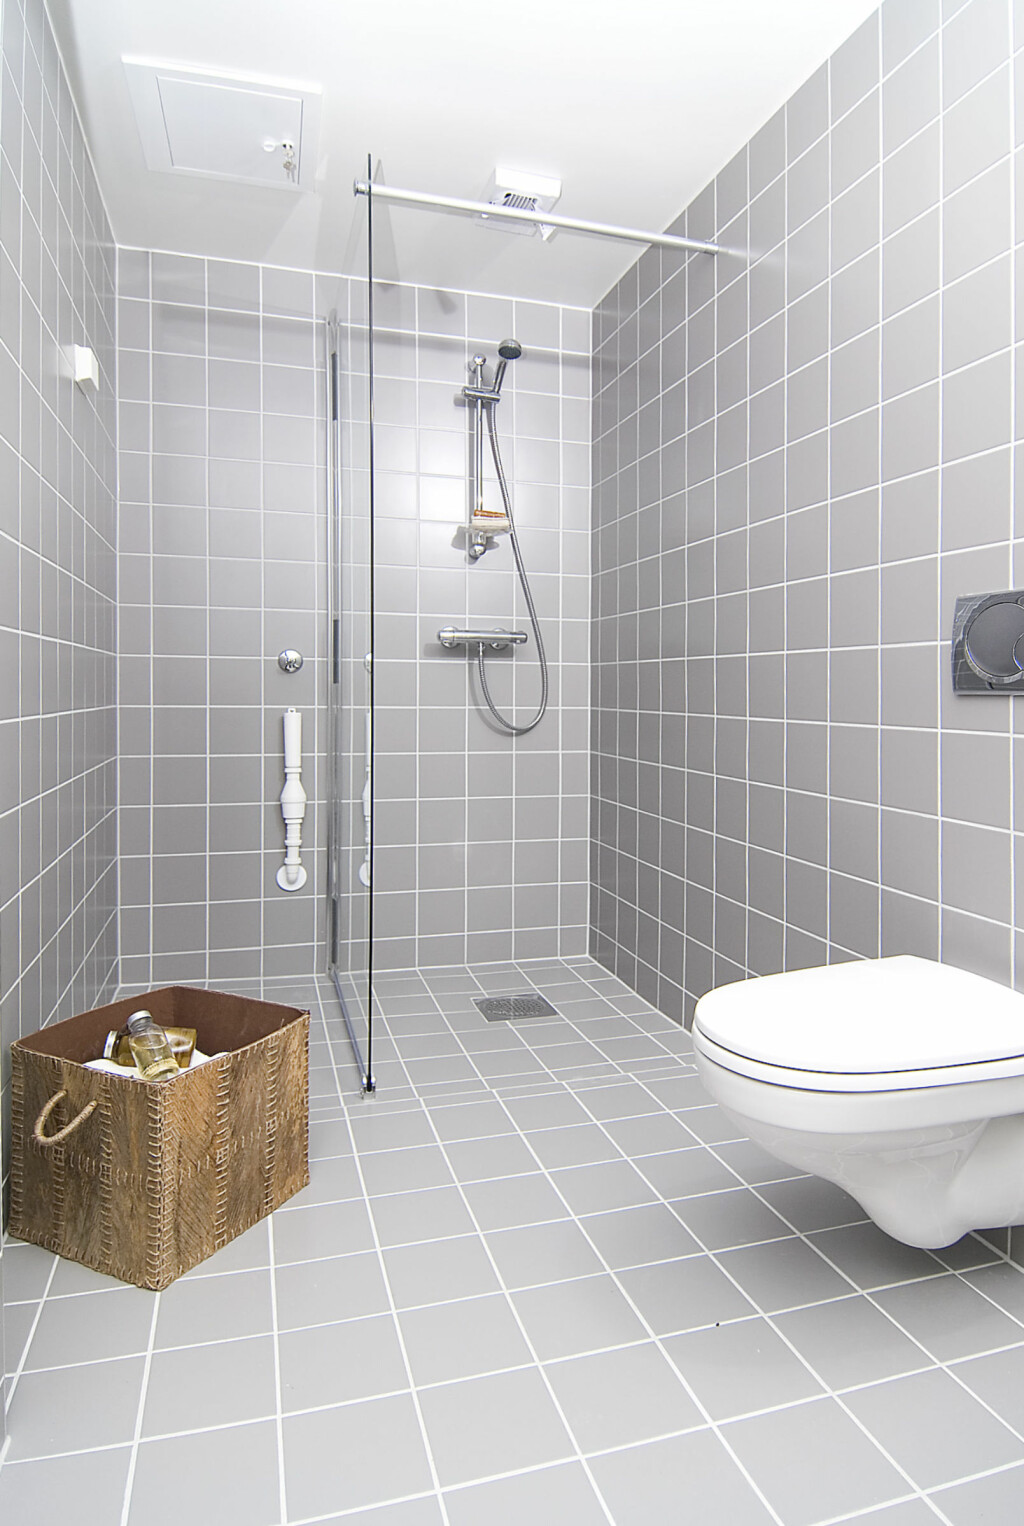 Badet stylet av Interior Deal AS. Foto: Foto: Garanti Eiendomsmegling